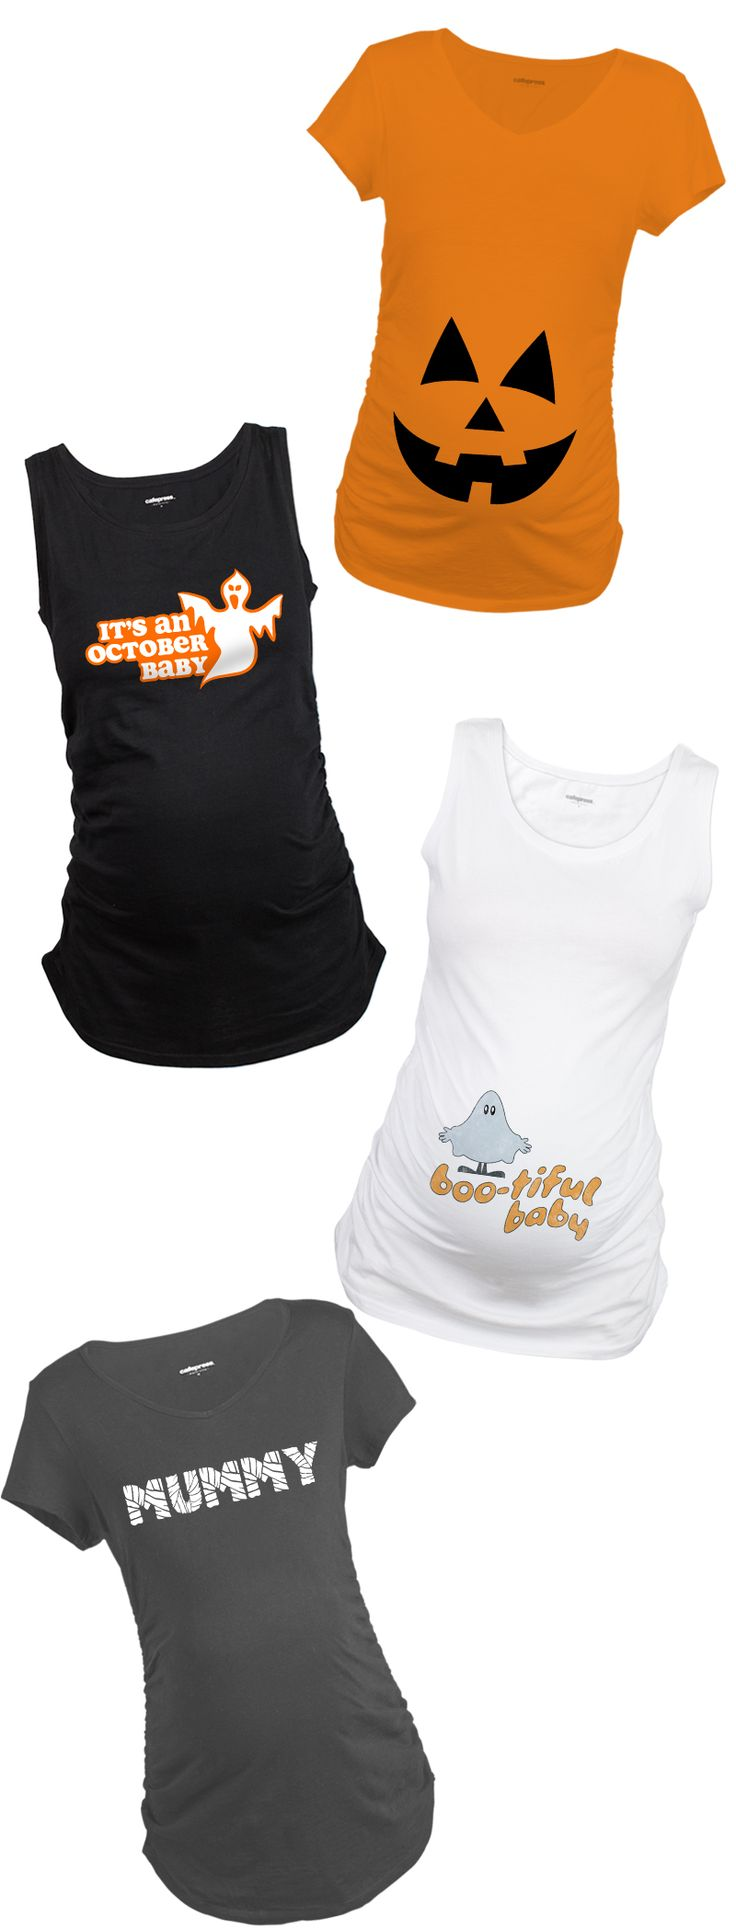 Maternity clothes don't have to suck. Are you expecting? Keep your sense of style with unique, creative, and funny Maternity Clothes from CafePress!